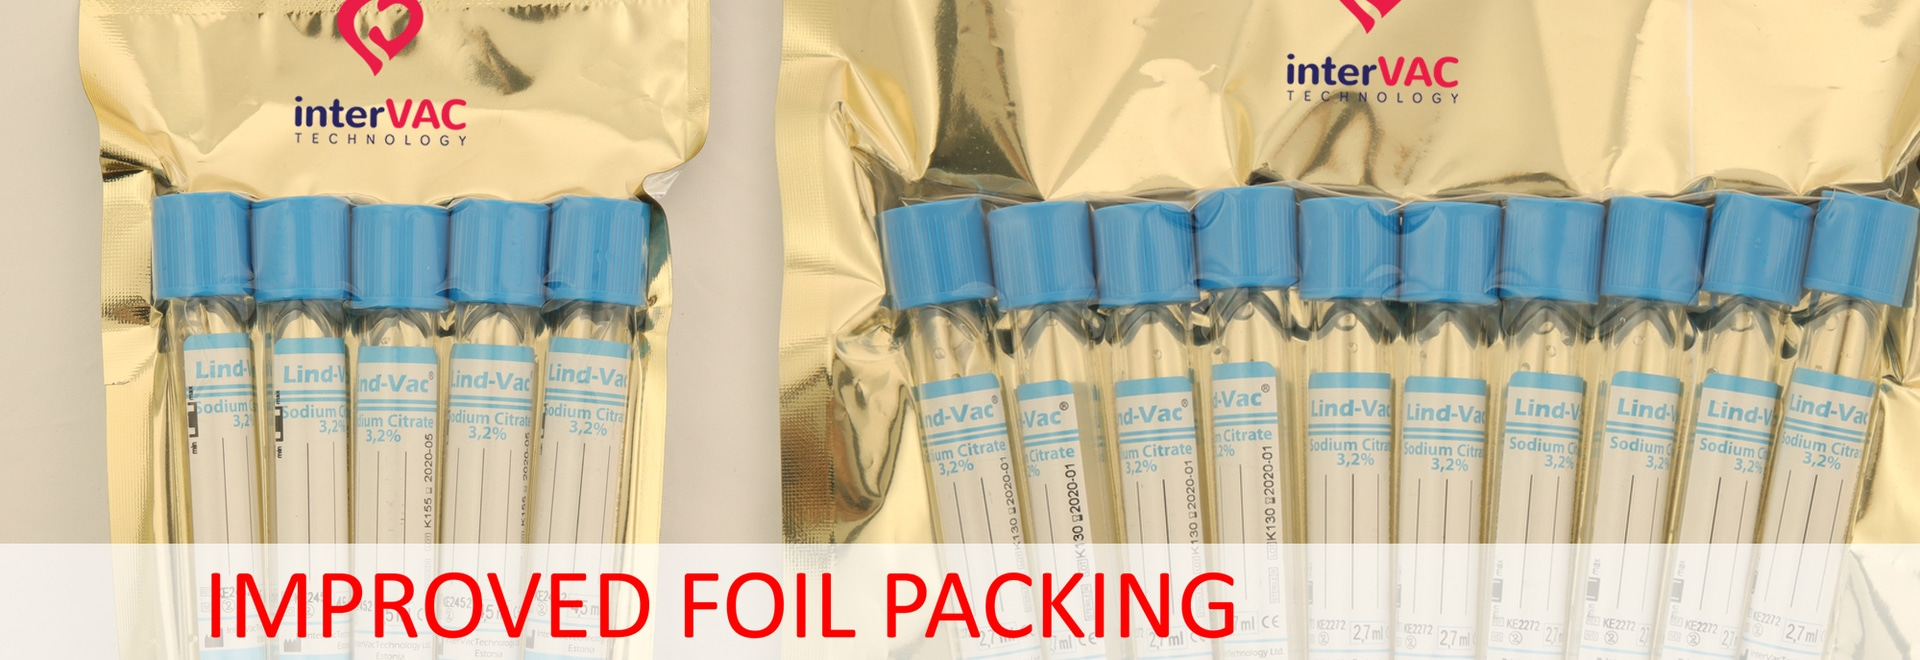 Satefy foil packing for blood collection tubes